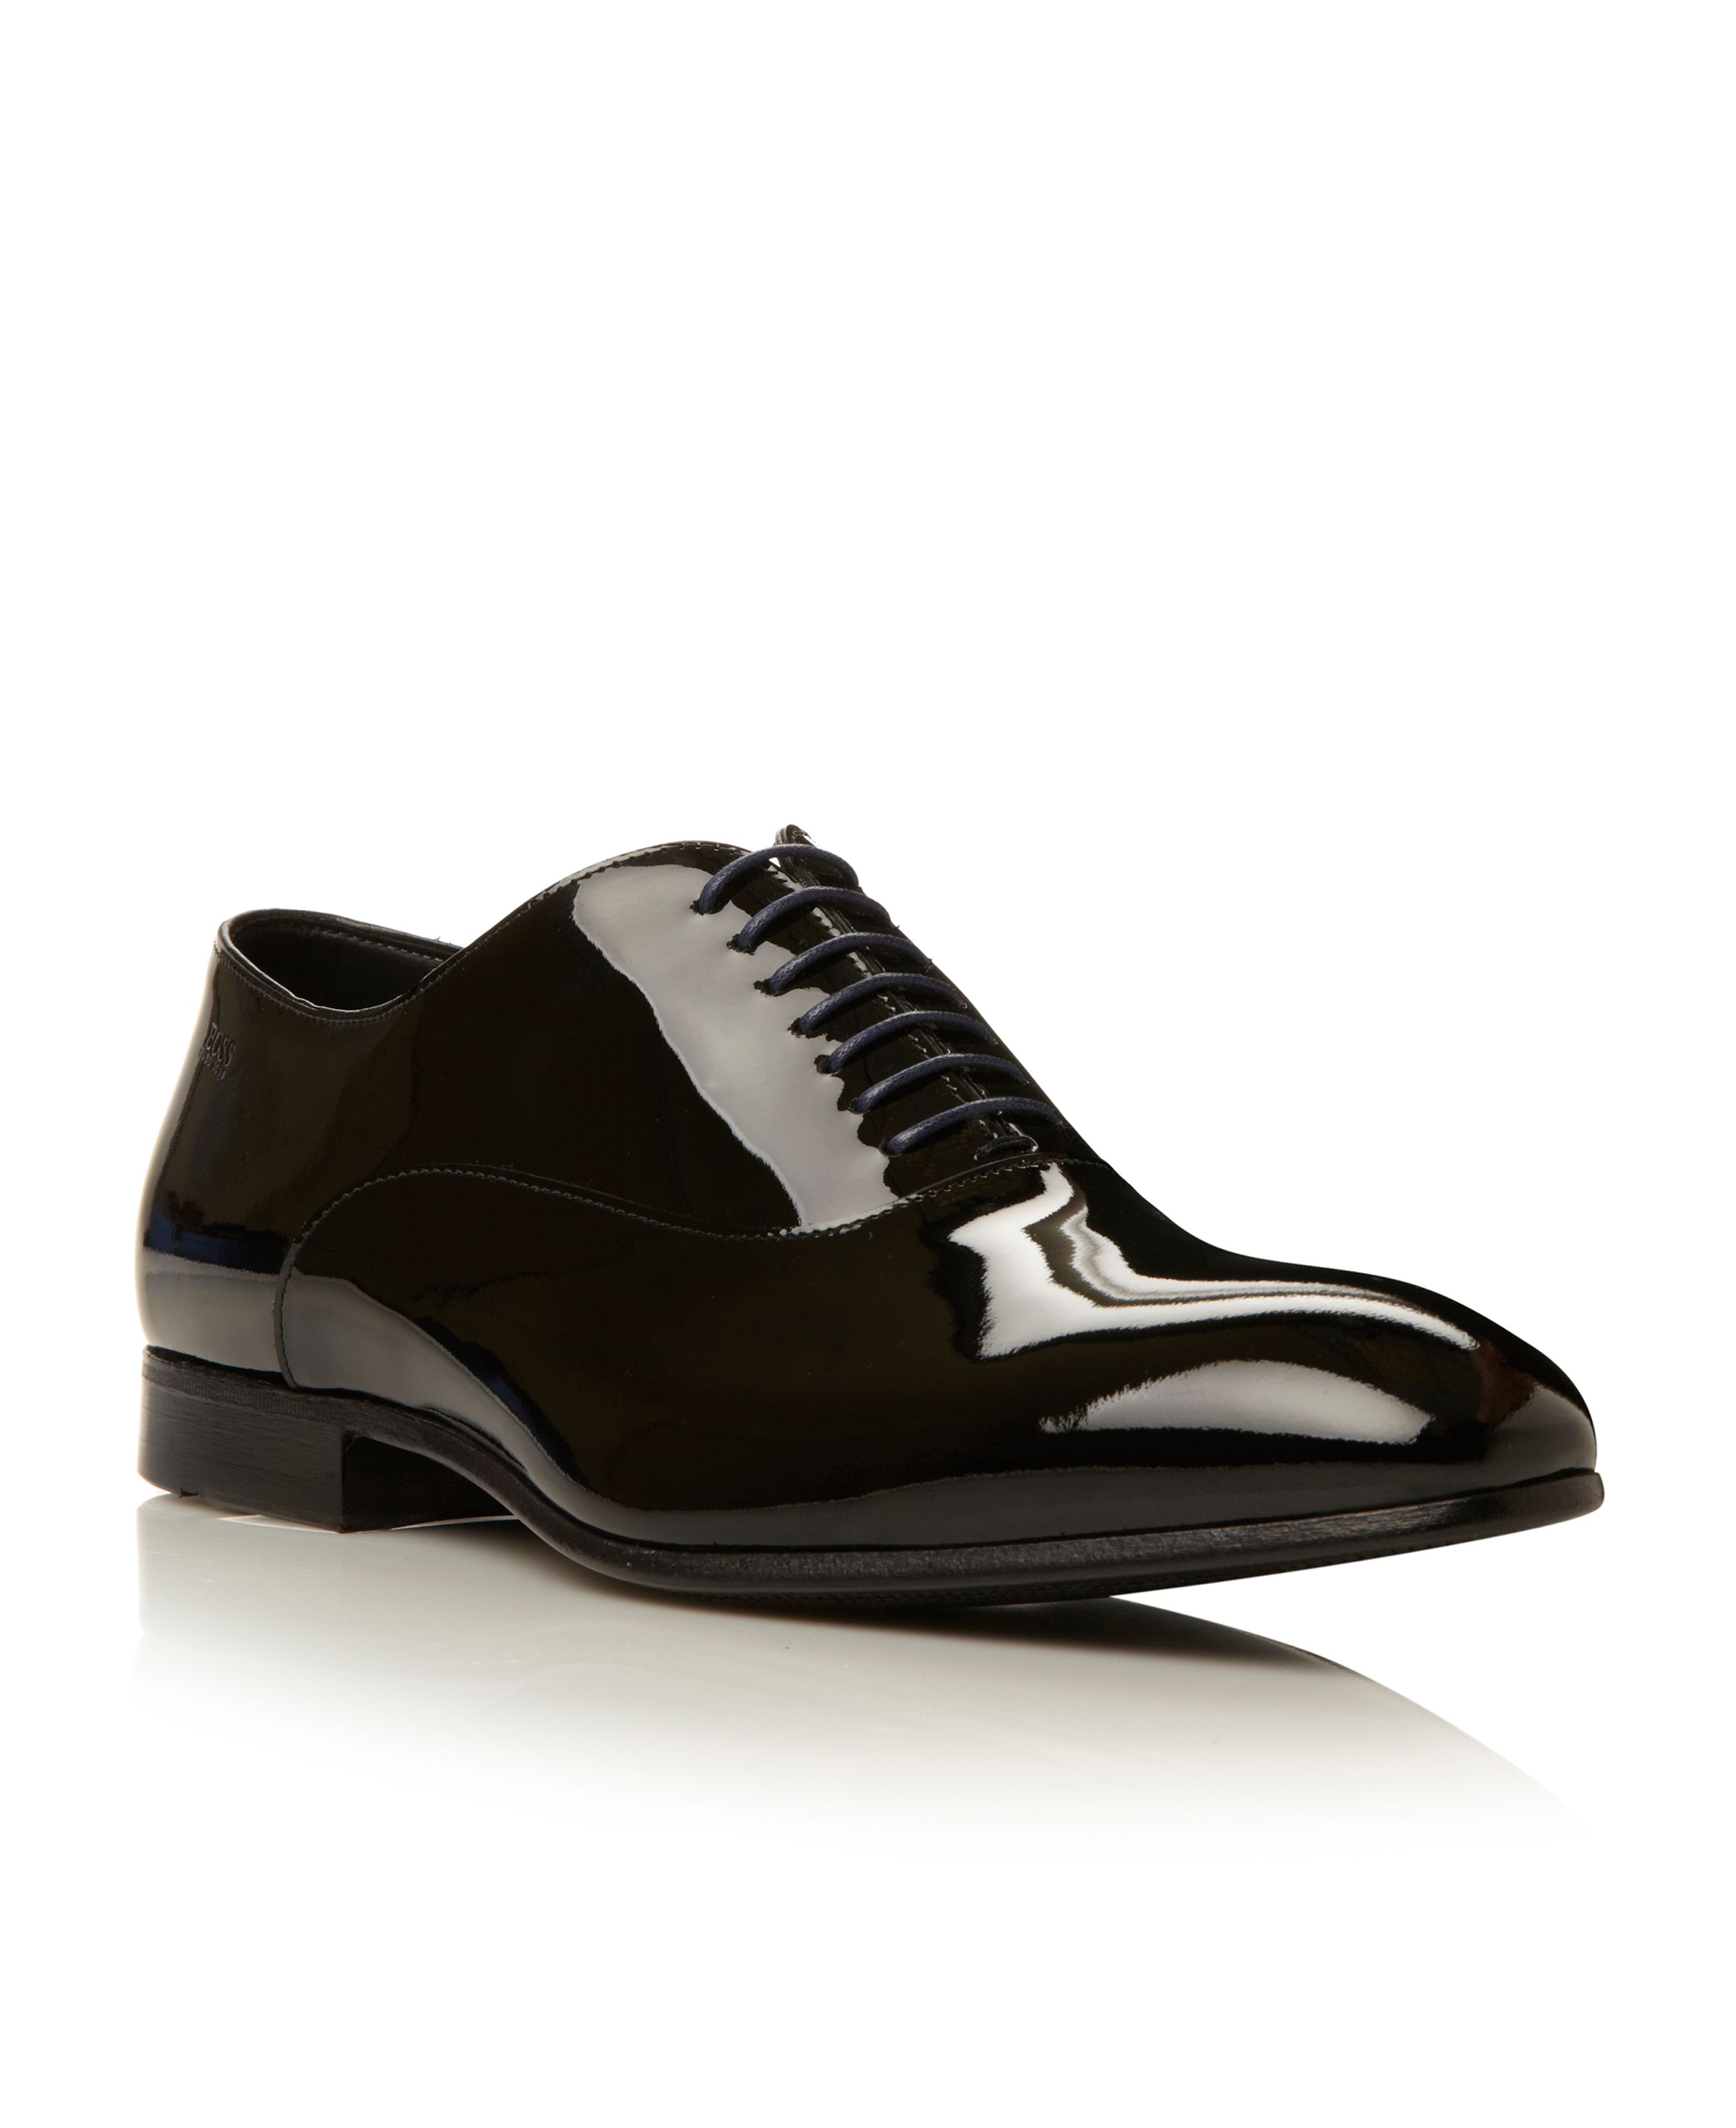 Tusset lace up formal shoes